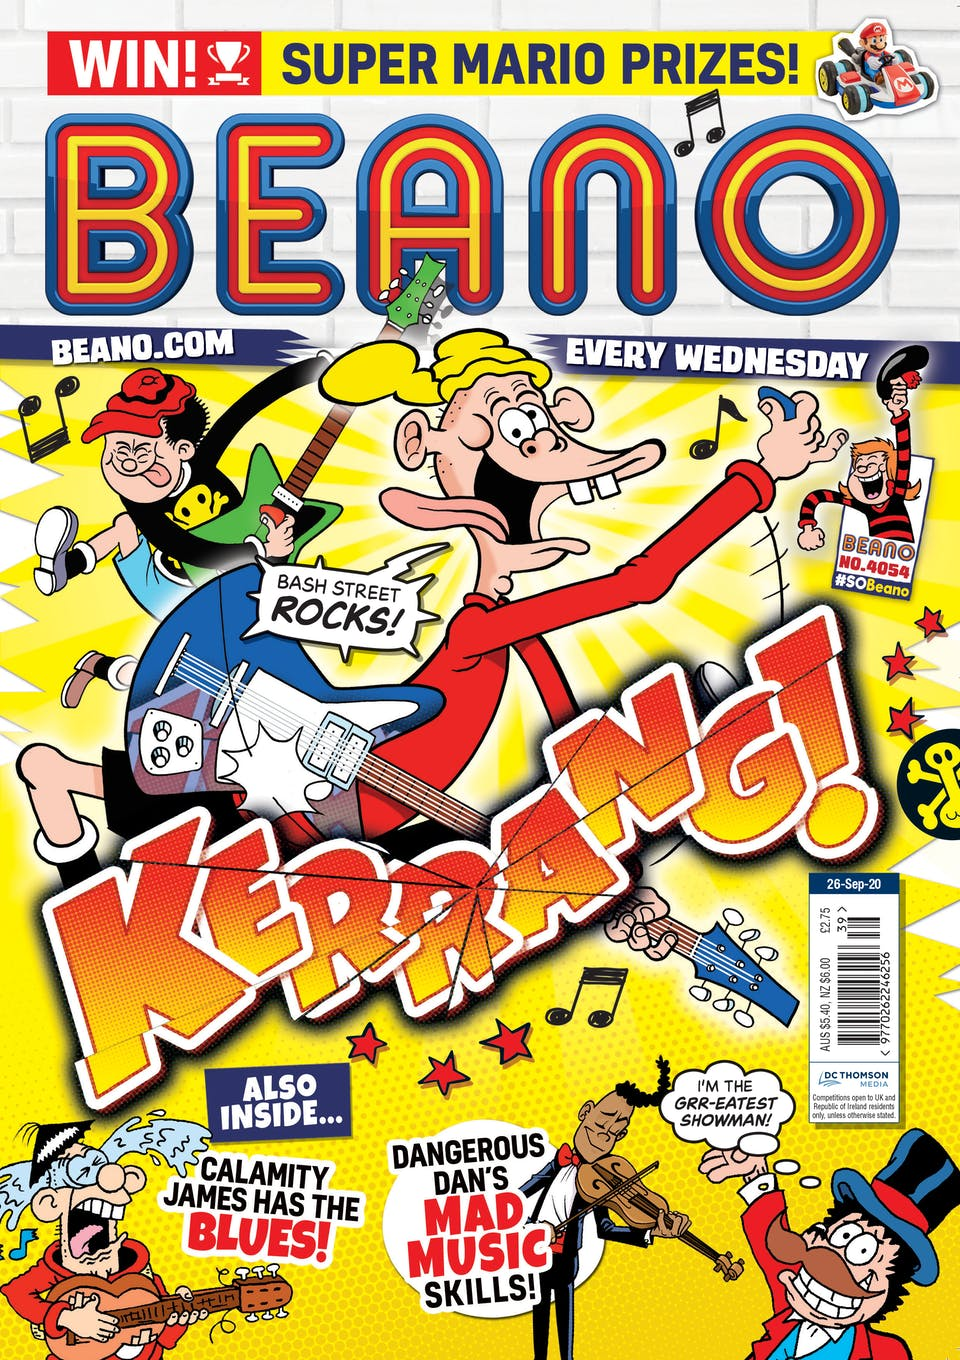 Inside Beano no.4053  - Bash Street Faces The Music!